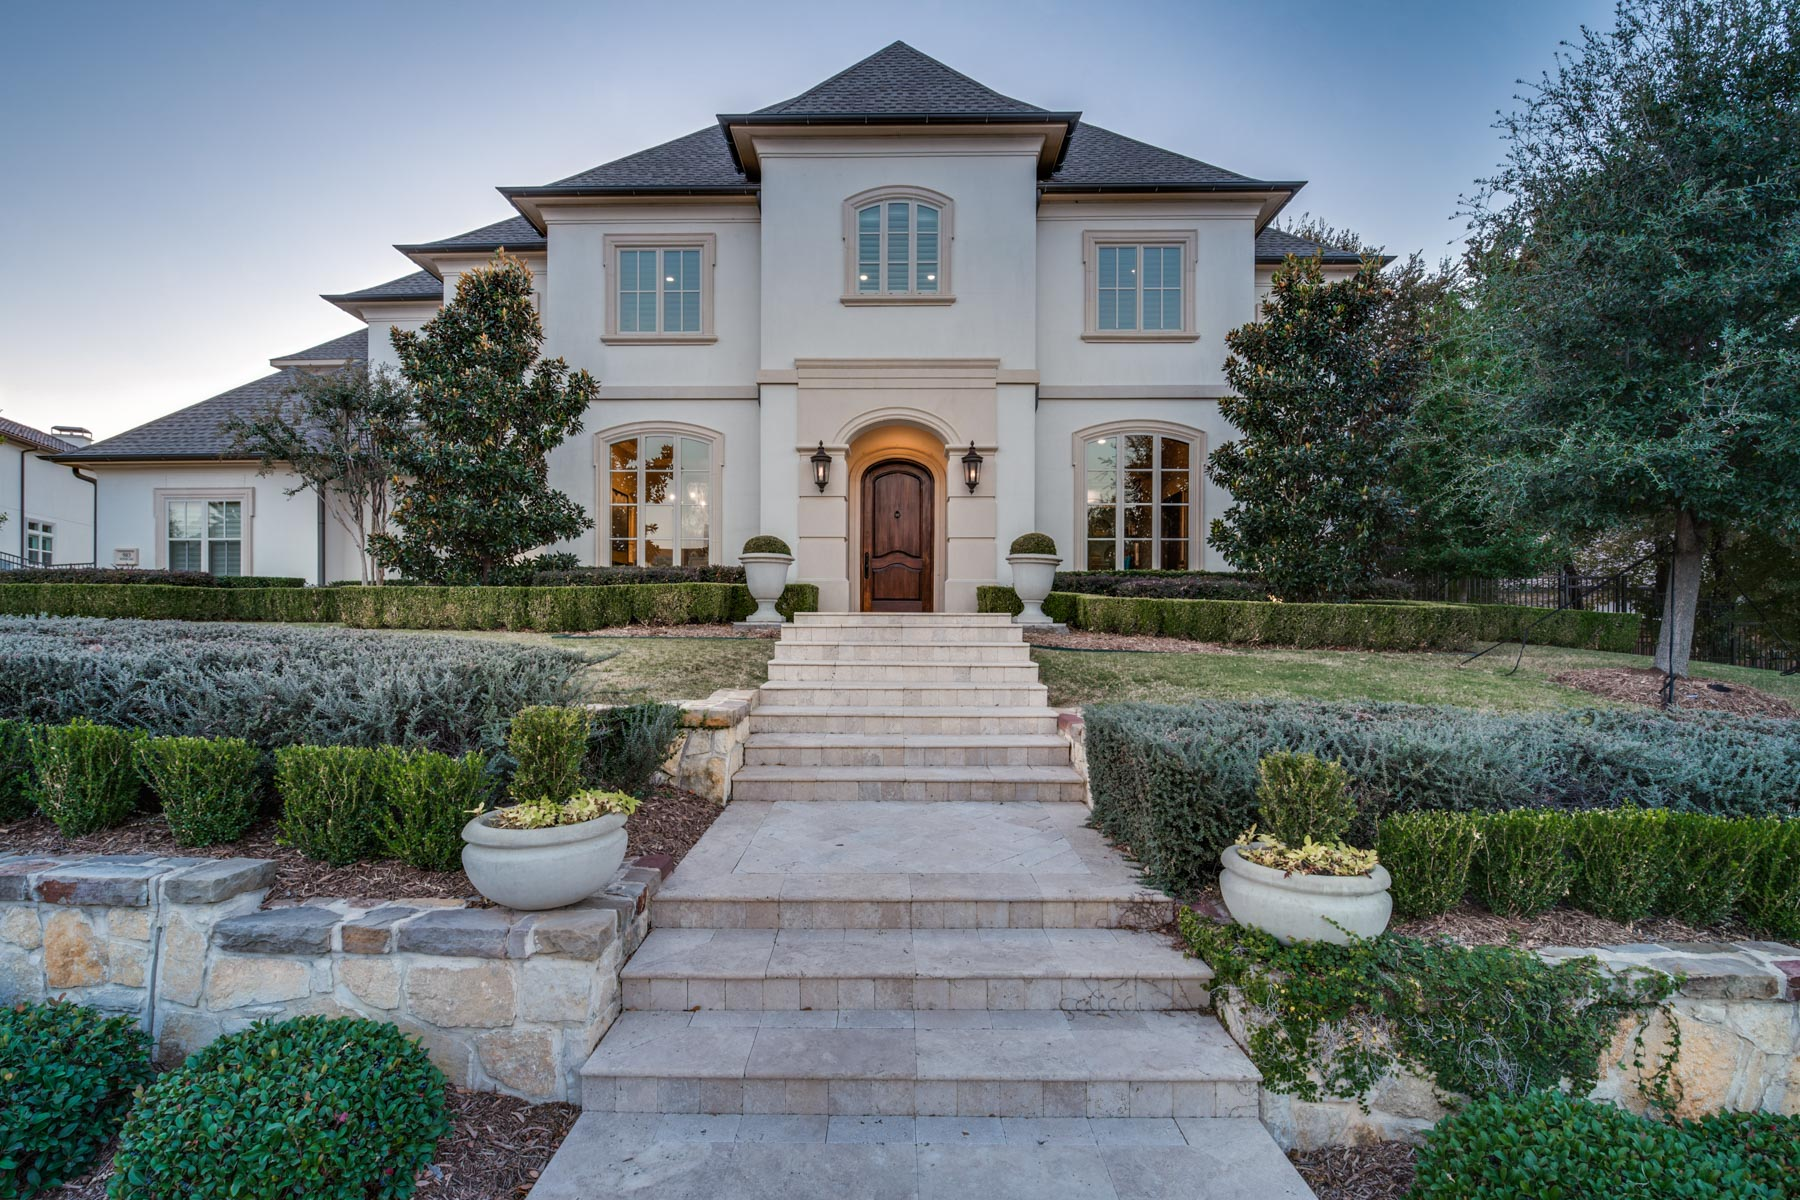 Single Family Home for Sale at Allen's Only Exclusive Gated Community 503 Woodlake Drive Allen, Texas 75013 United States